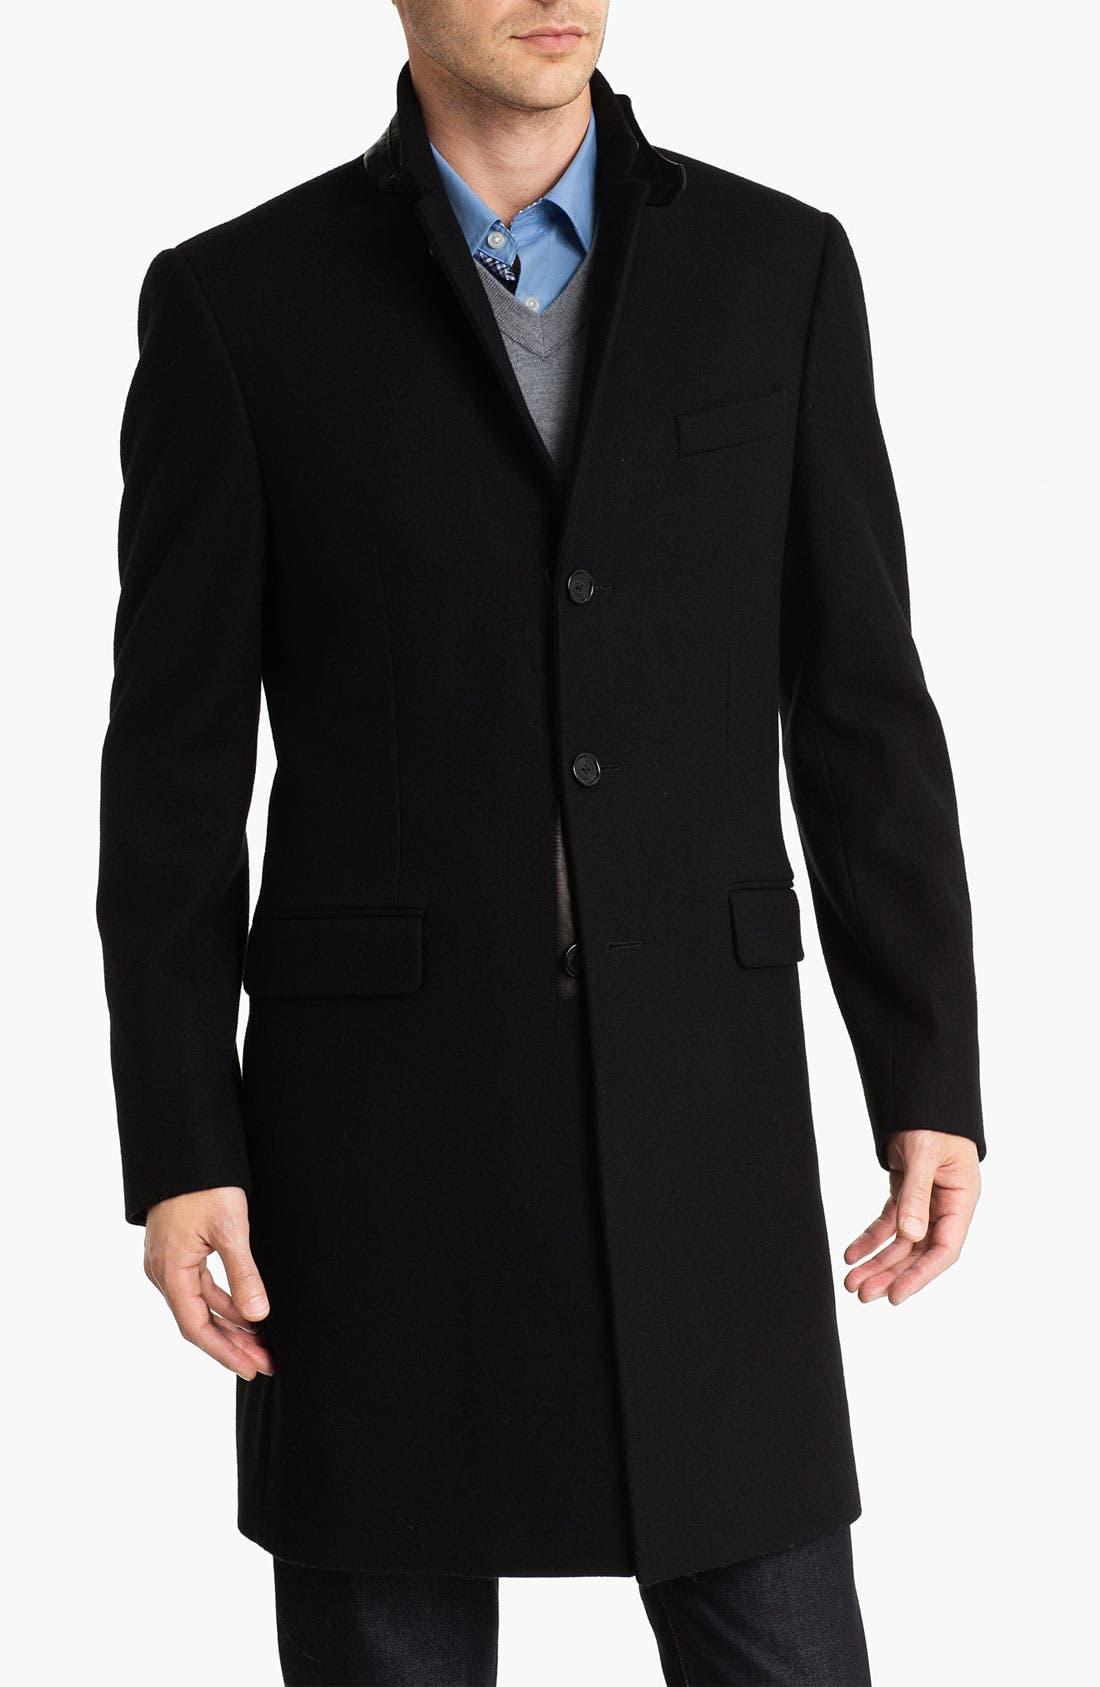 Melton Topcoat with Leather Trim,                             Main thumbnail 1, color,                             001